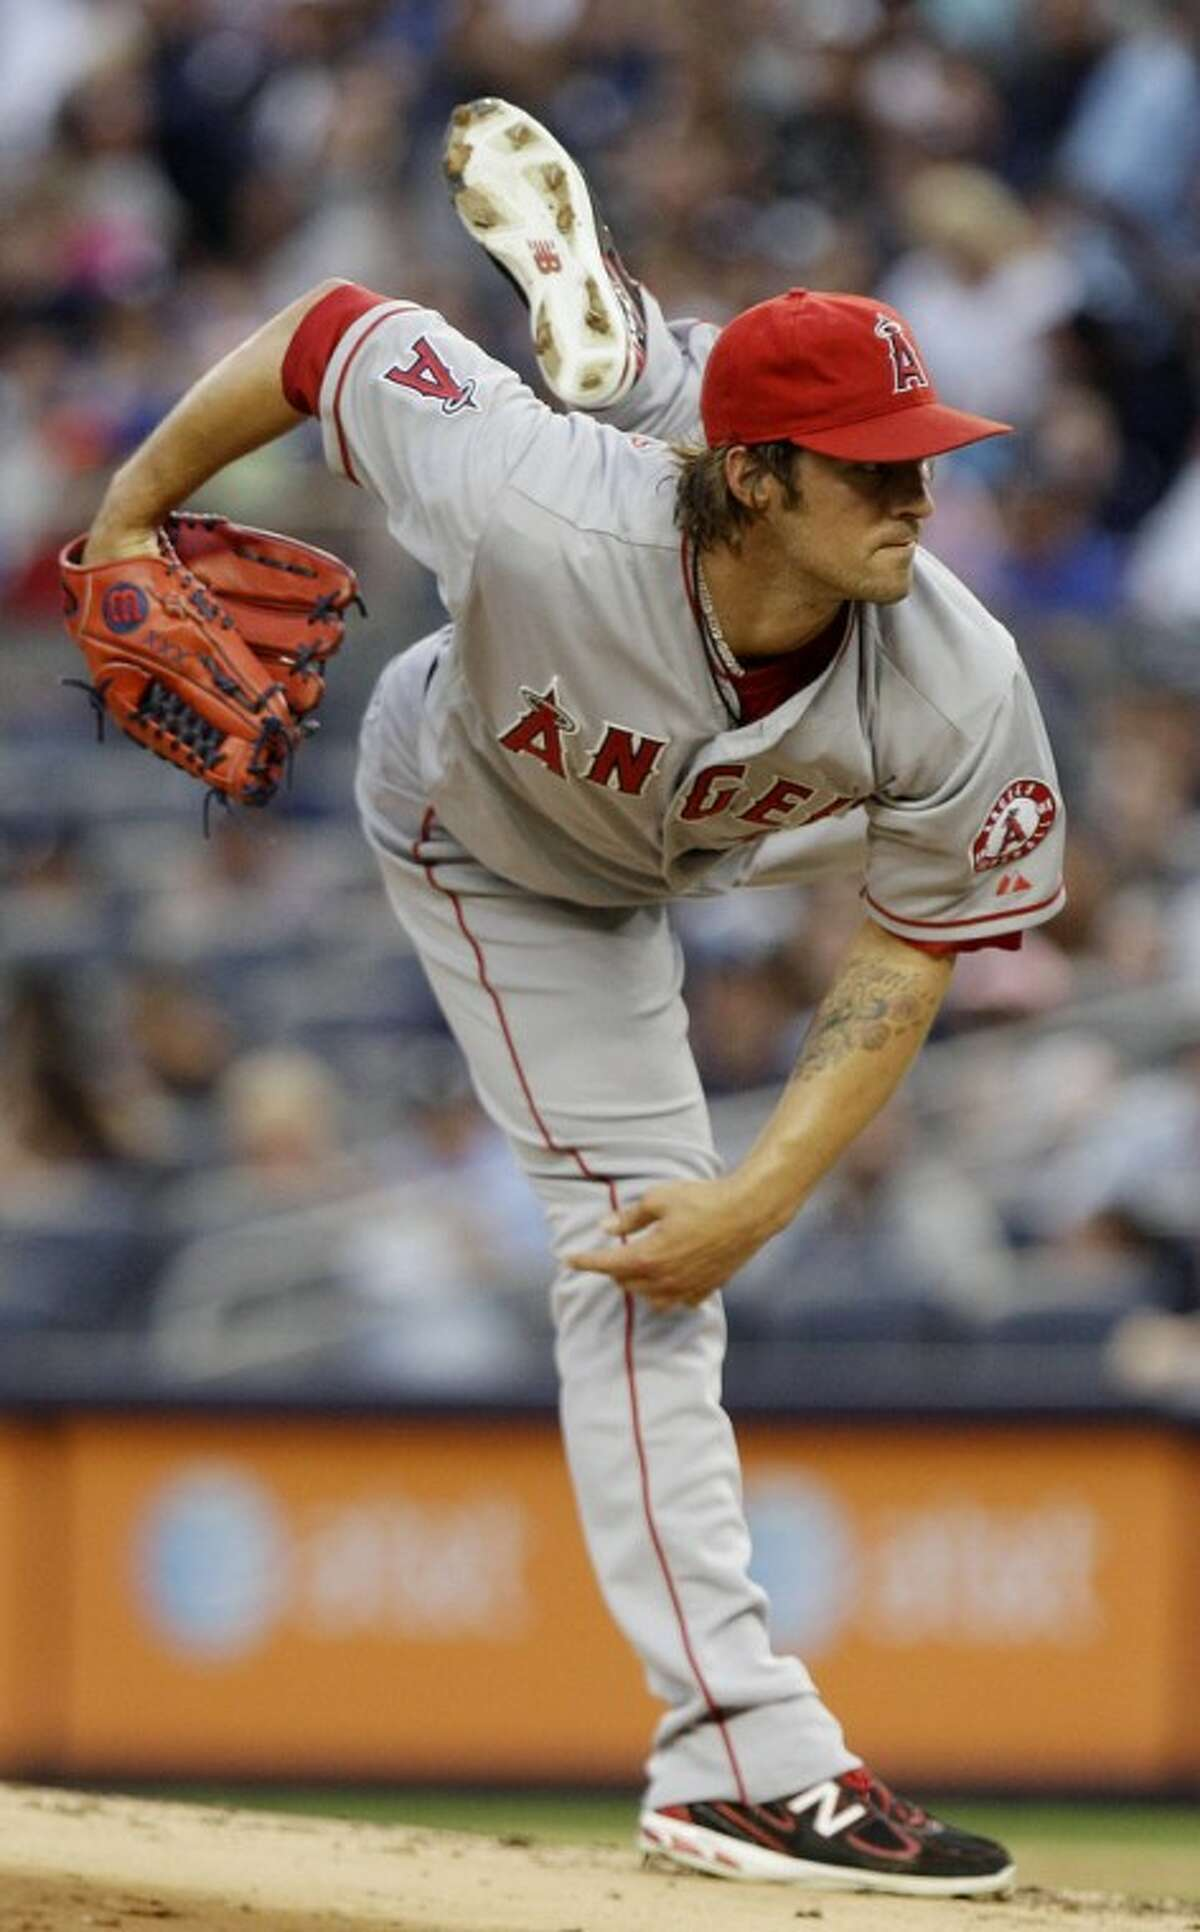 Los Angeles Angels' C.J. Wilson delivers a pitch during the first inning of a baseball game against the New York Yankees, Friday, July 13, 2012, in New York. (AP Photo/Frank Franklin II)